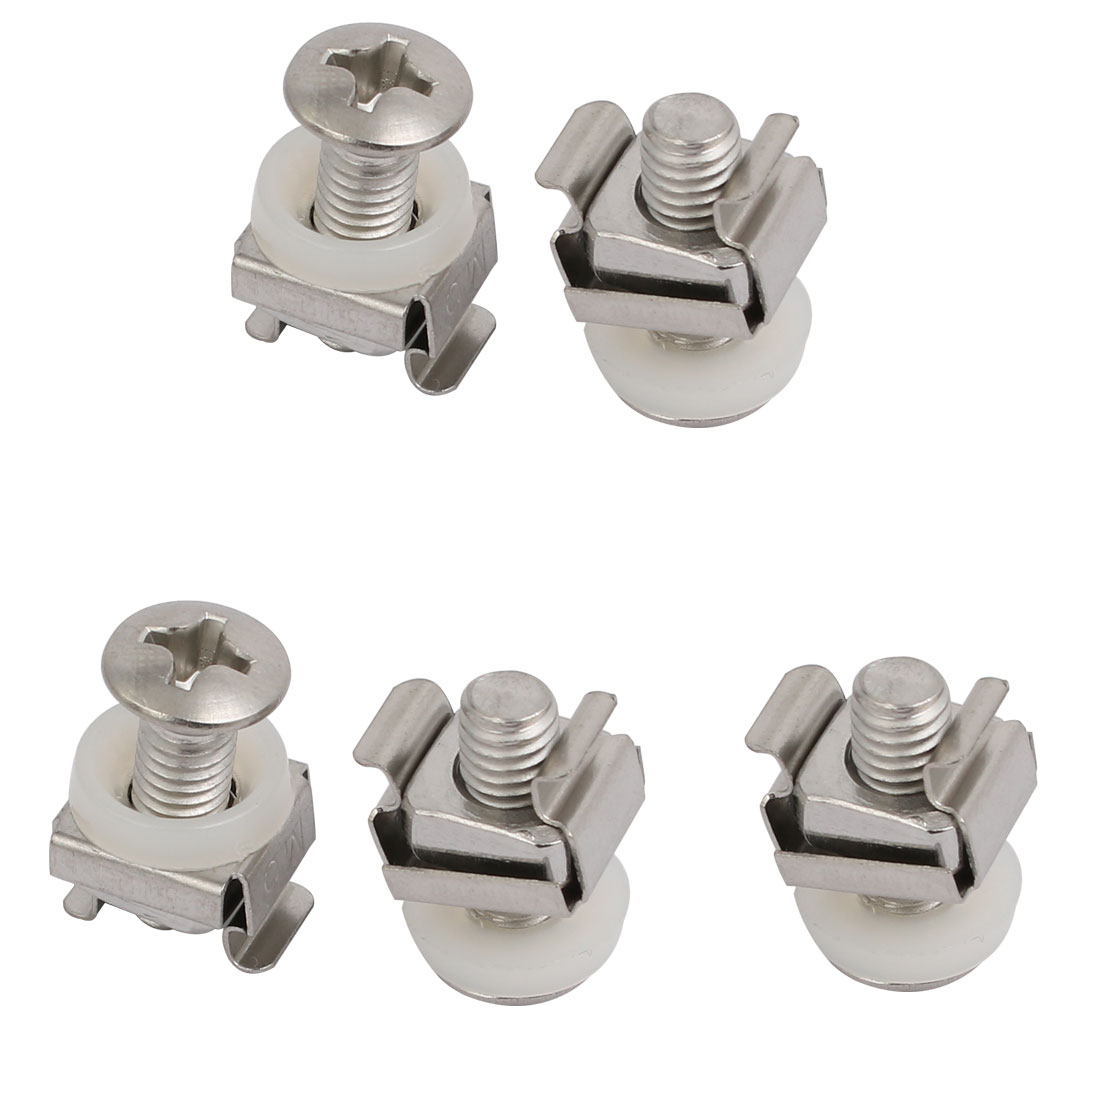 5pcs M6 Cage Nuts w Mounting Screws Washers for Server Rack Shelf Cabinet